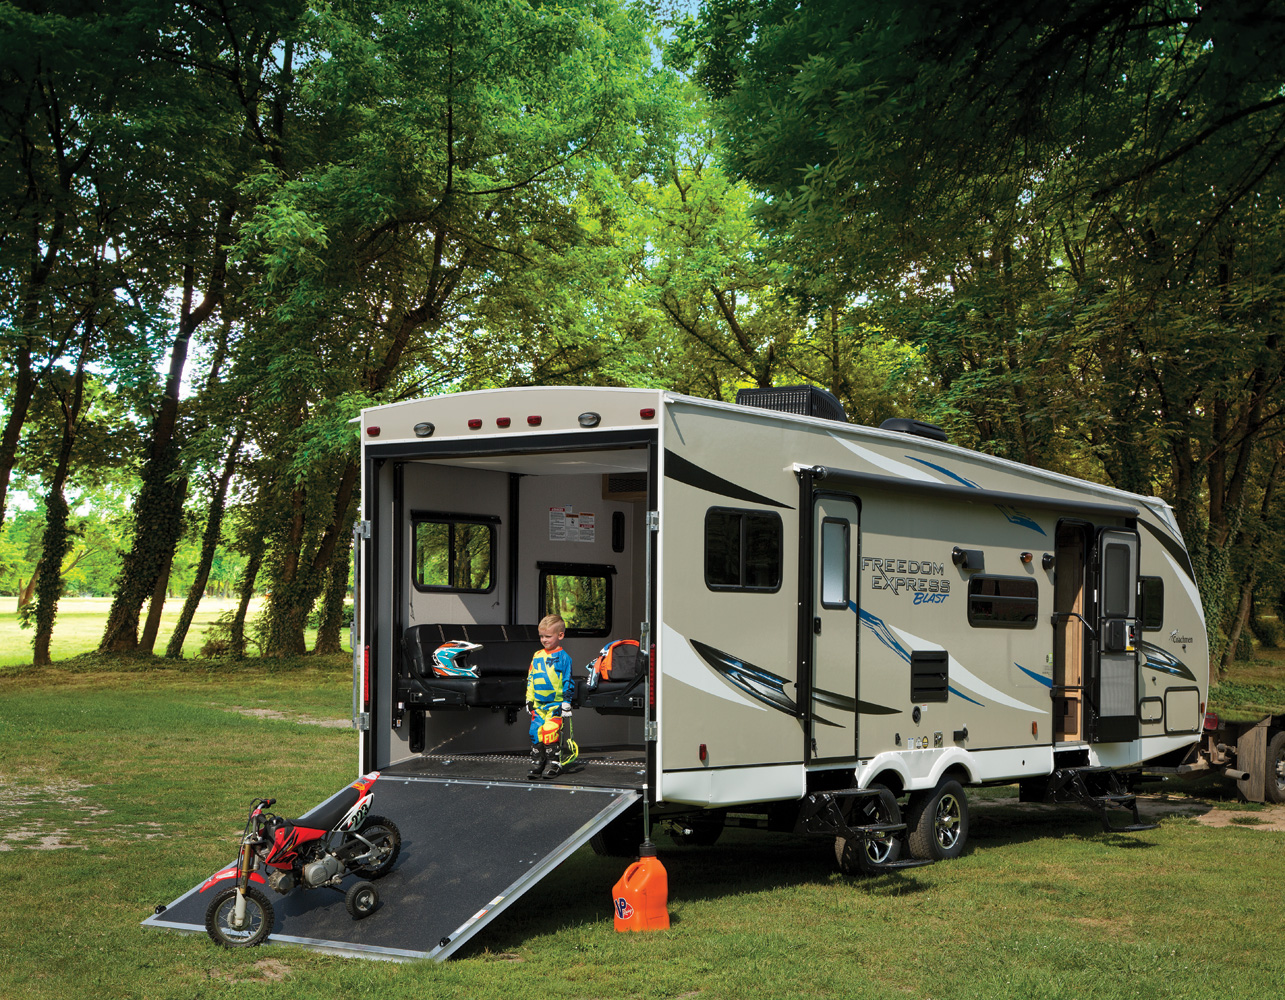 Freedom Express Blast Toy Haulers by Coachmen RV